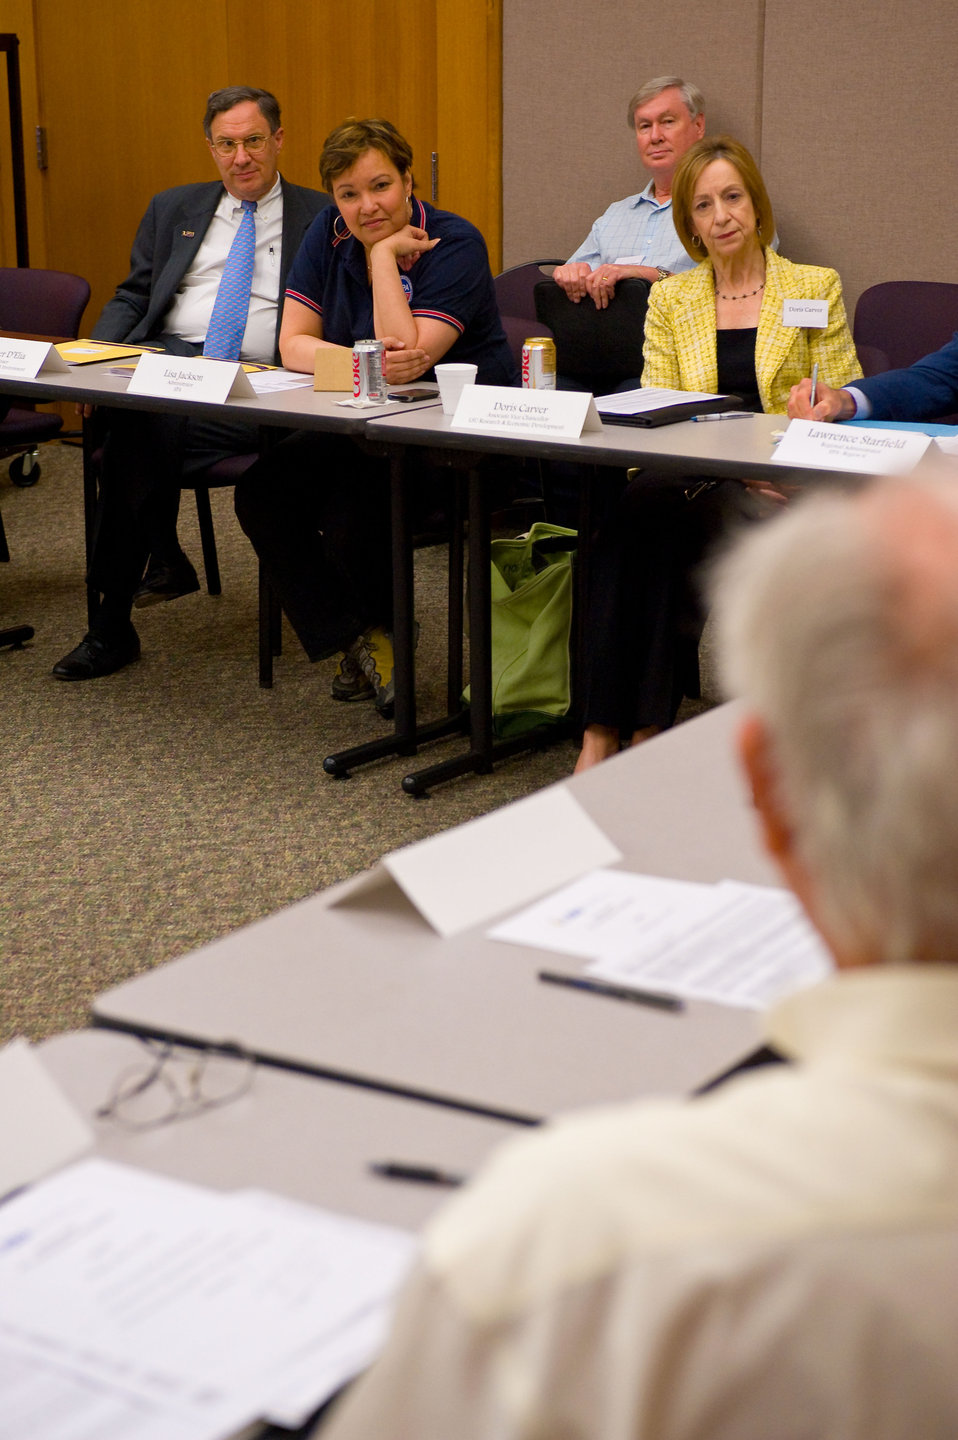 EPA Administrator Meets with Gulf Region Scientists